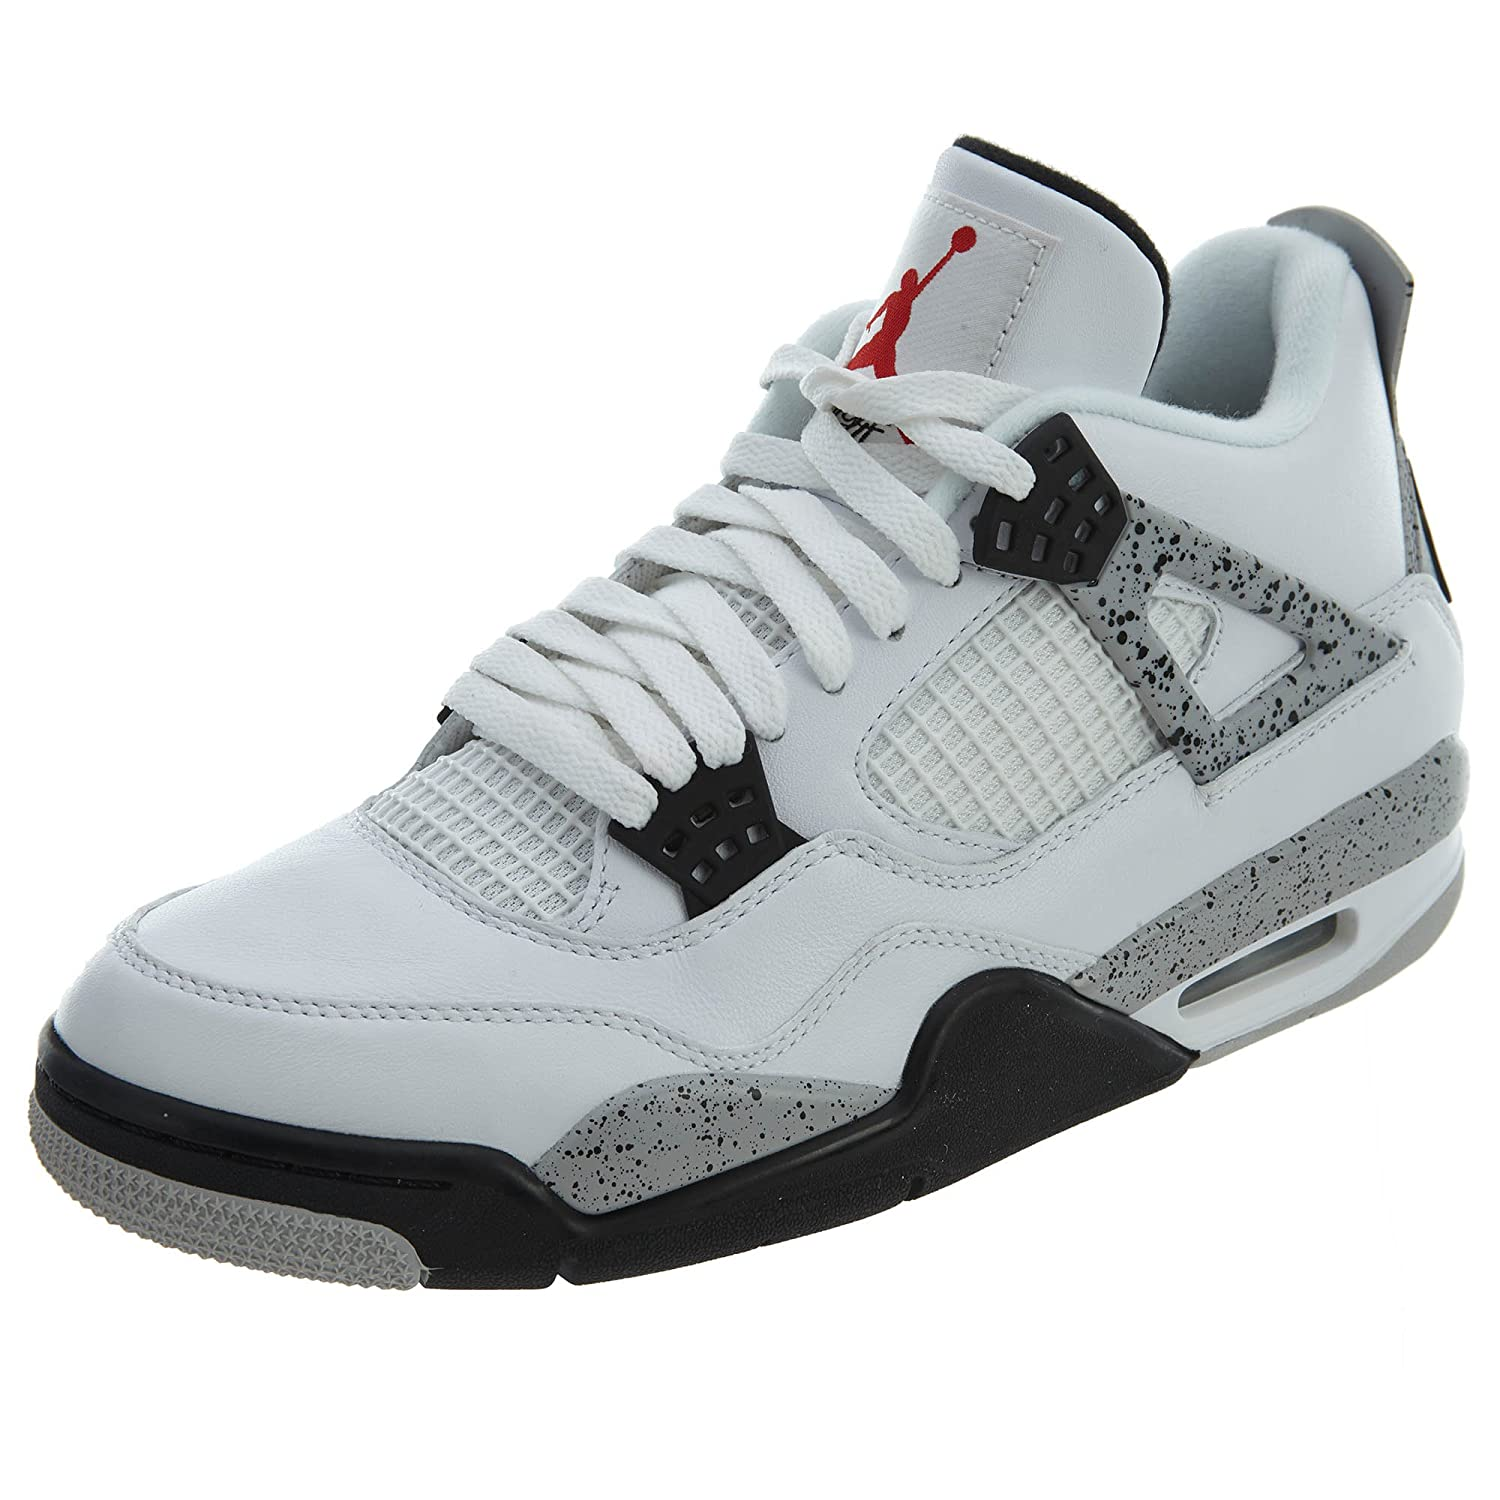 NIKE Air Jordan 4 Retro OG, Chaussures de Sport-Basketball Homme (White/Fire 42 EU|Blanco (Blanco (White/Fire Homme Red-black-tech Grey)) 943bfa